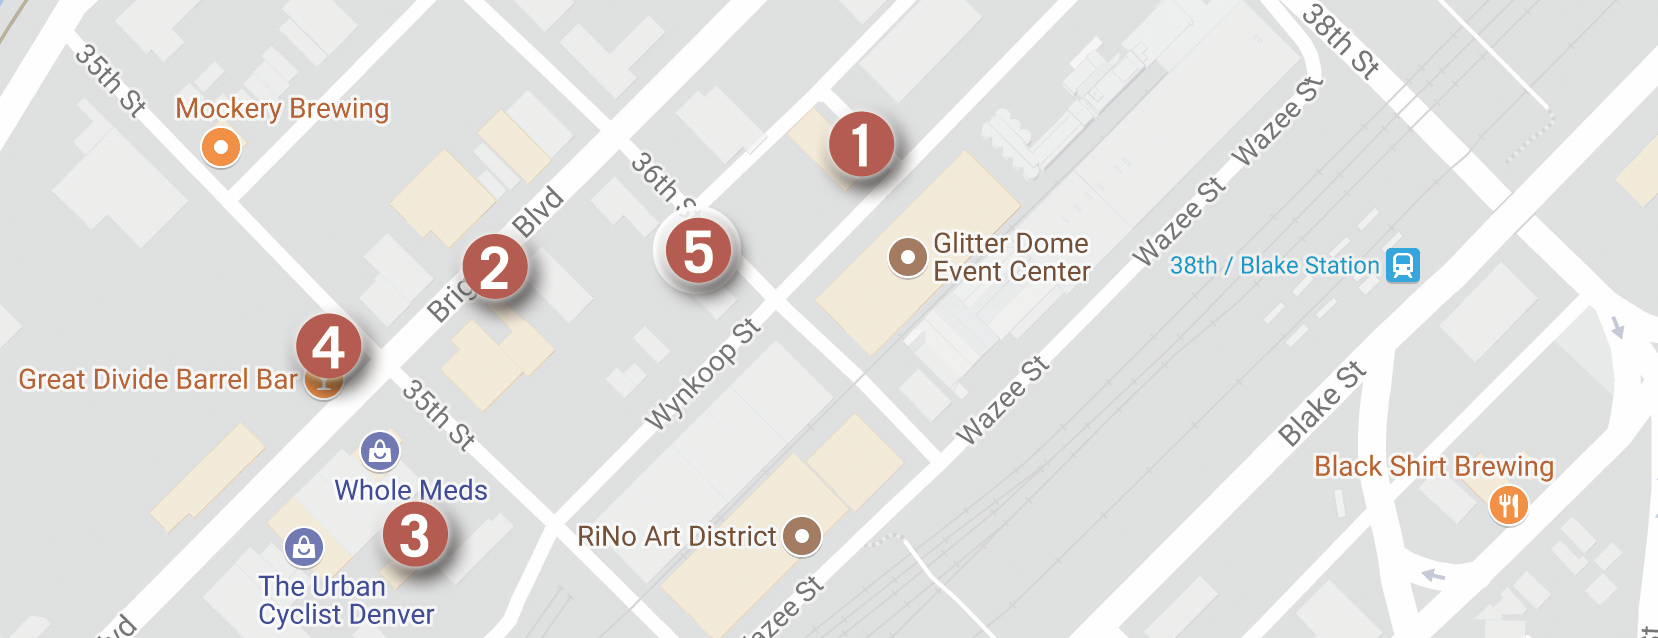 5RiNo Gallery Tour Map.png